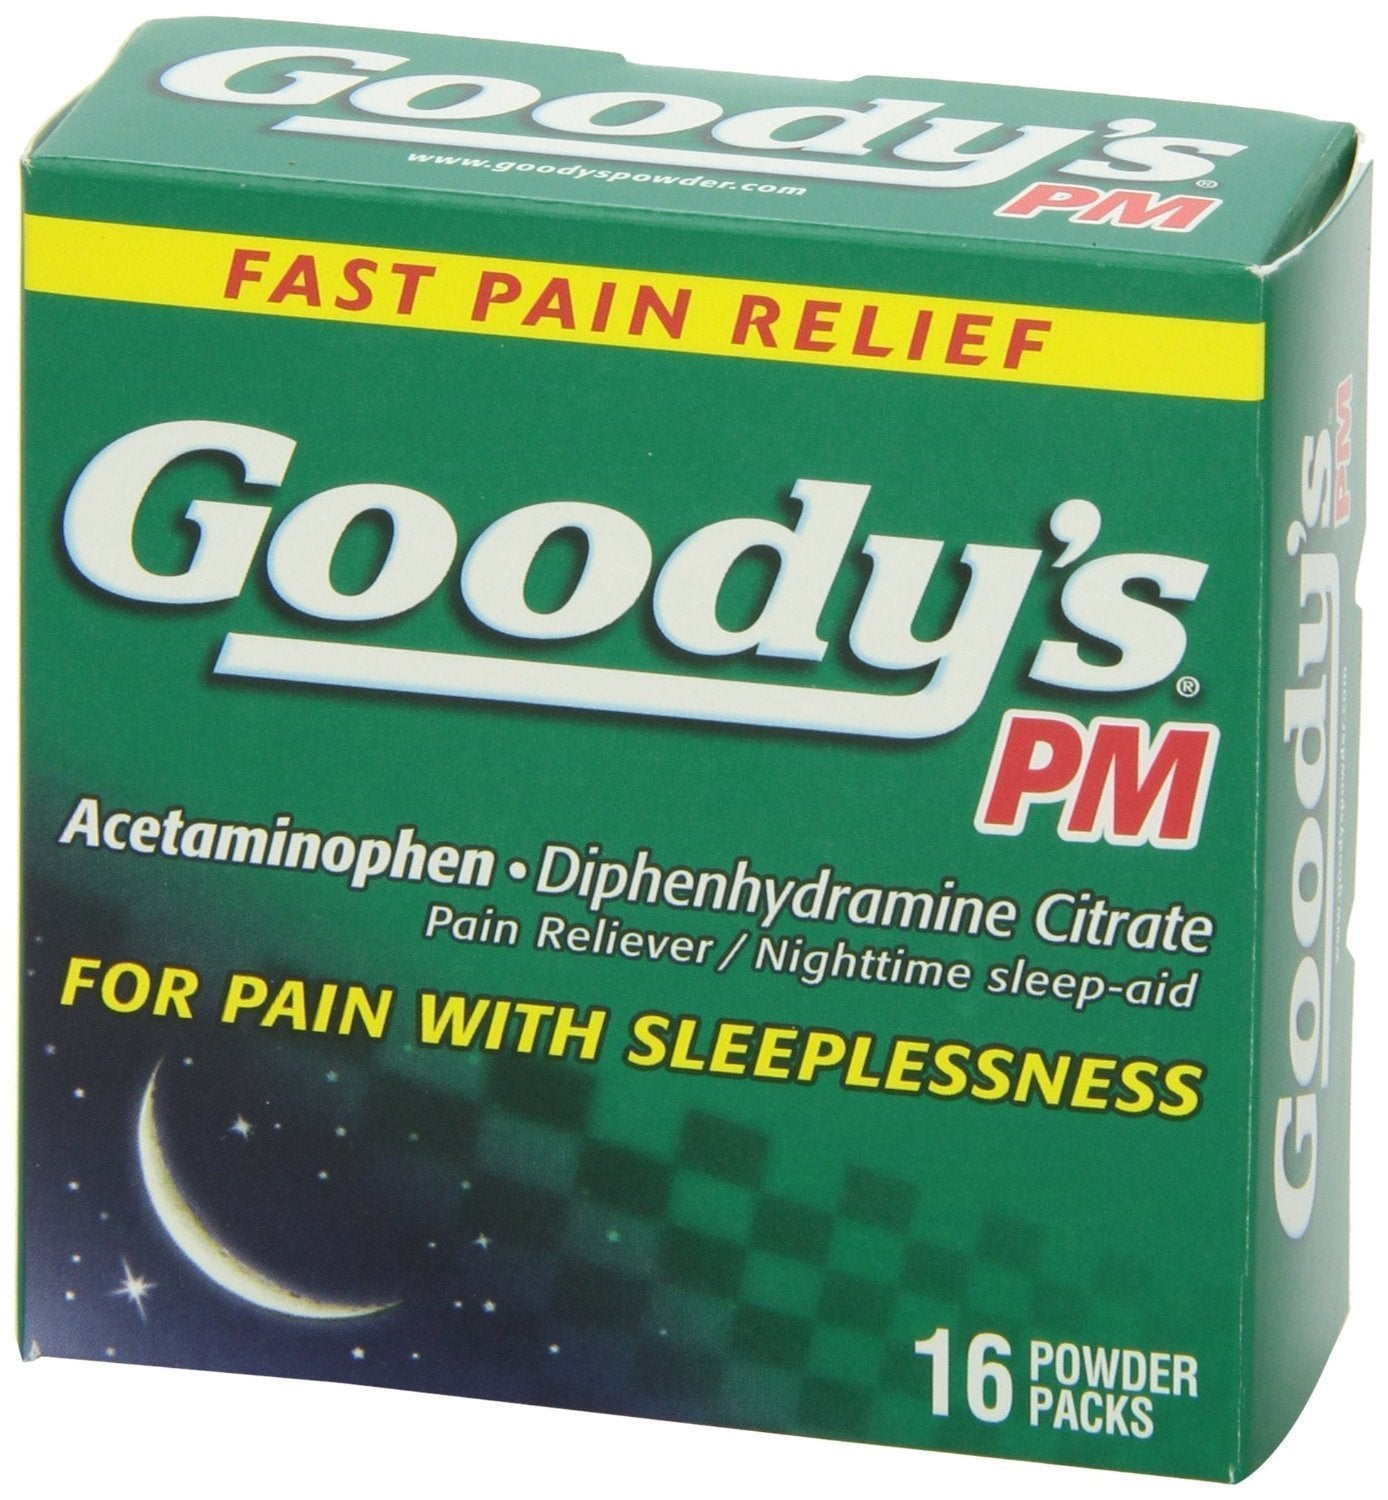 4 Packs of 16 Goody's PM Acetaminophen Diphenhydramine Citrate Pain Reliever/ Nighttime sleep aid